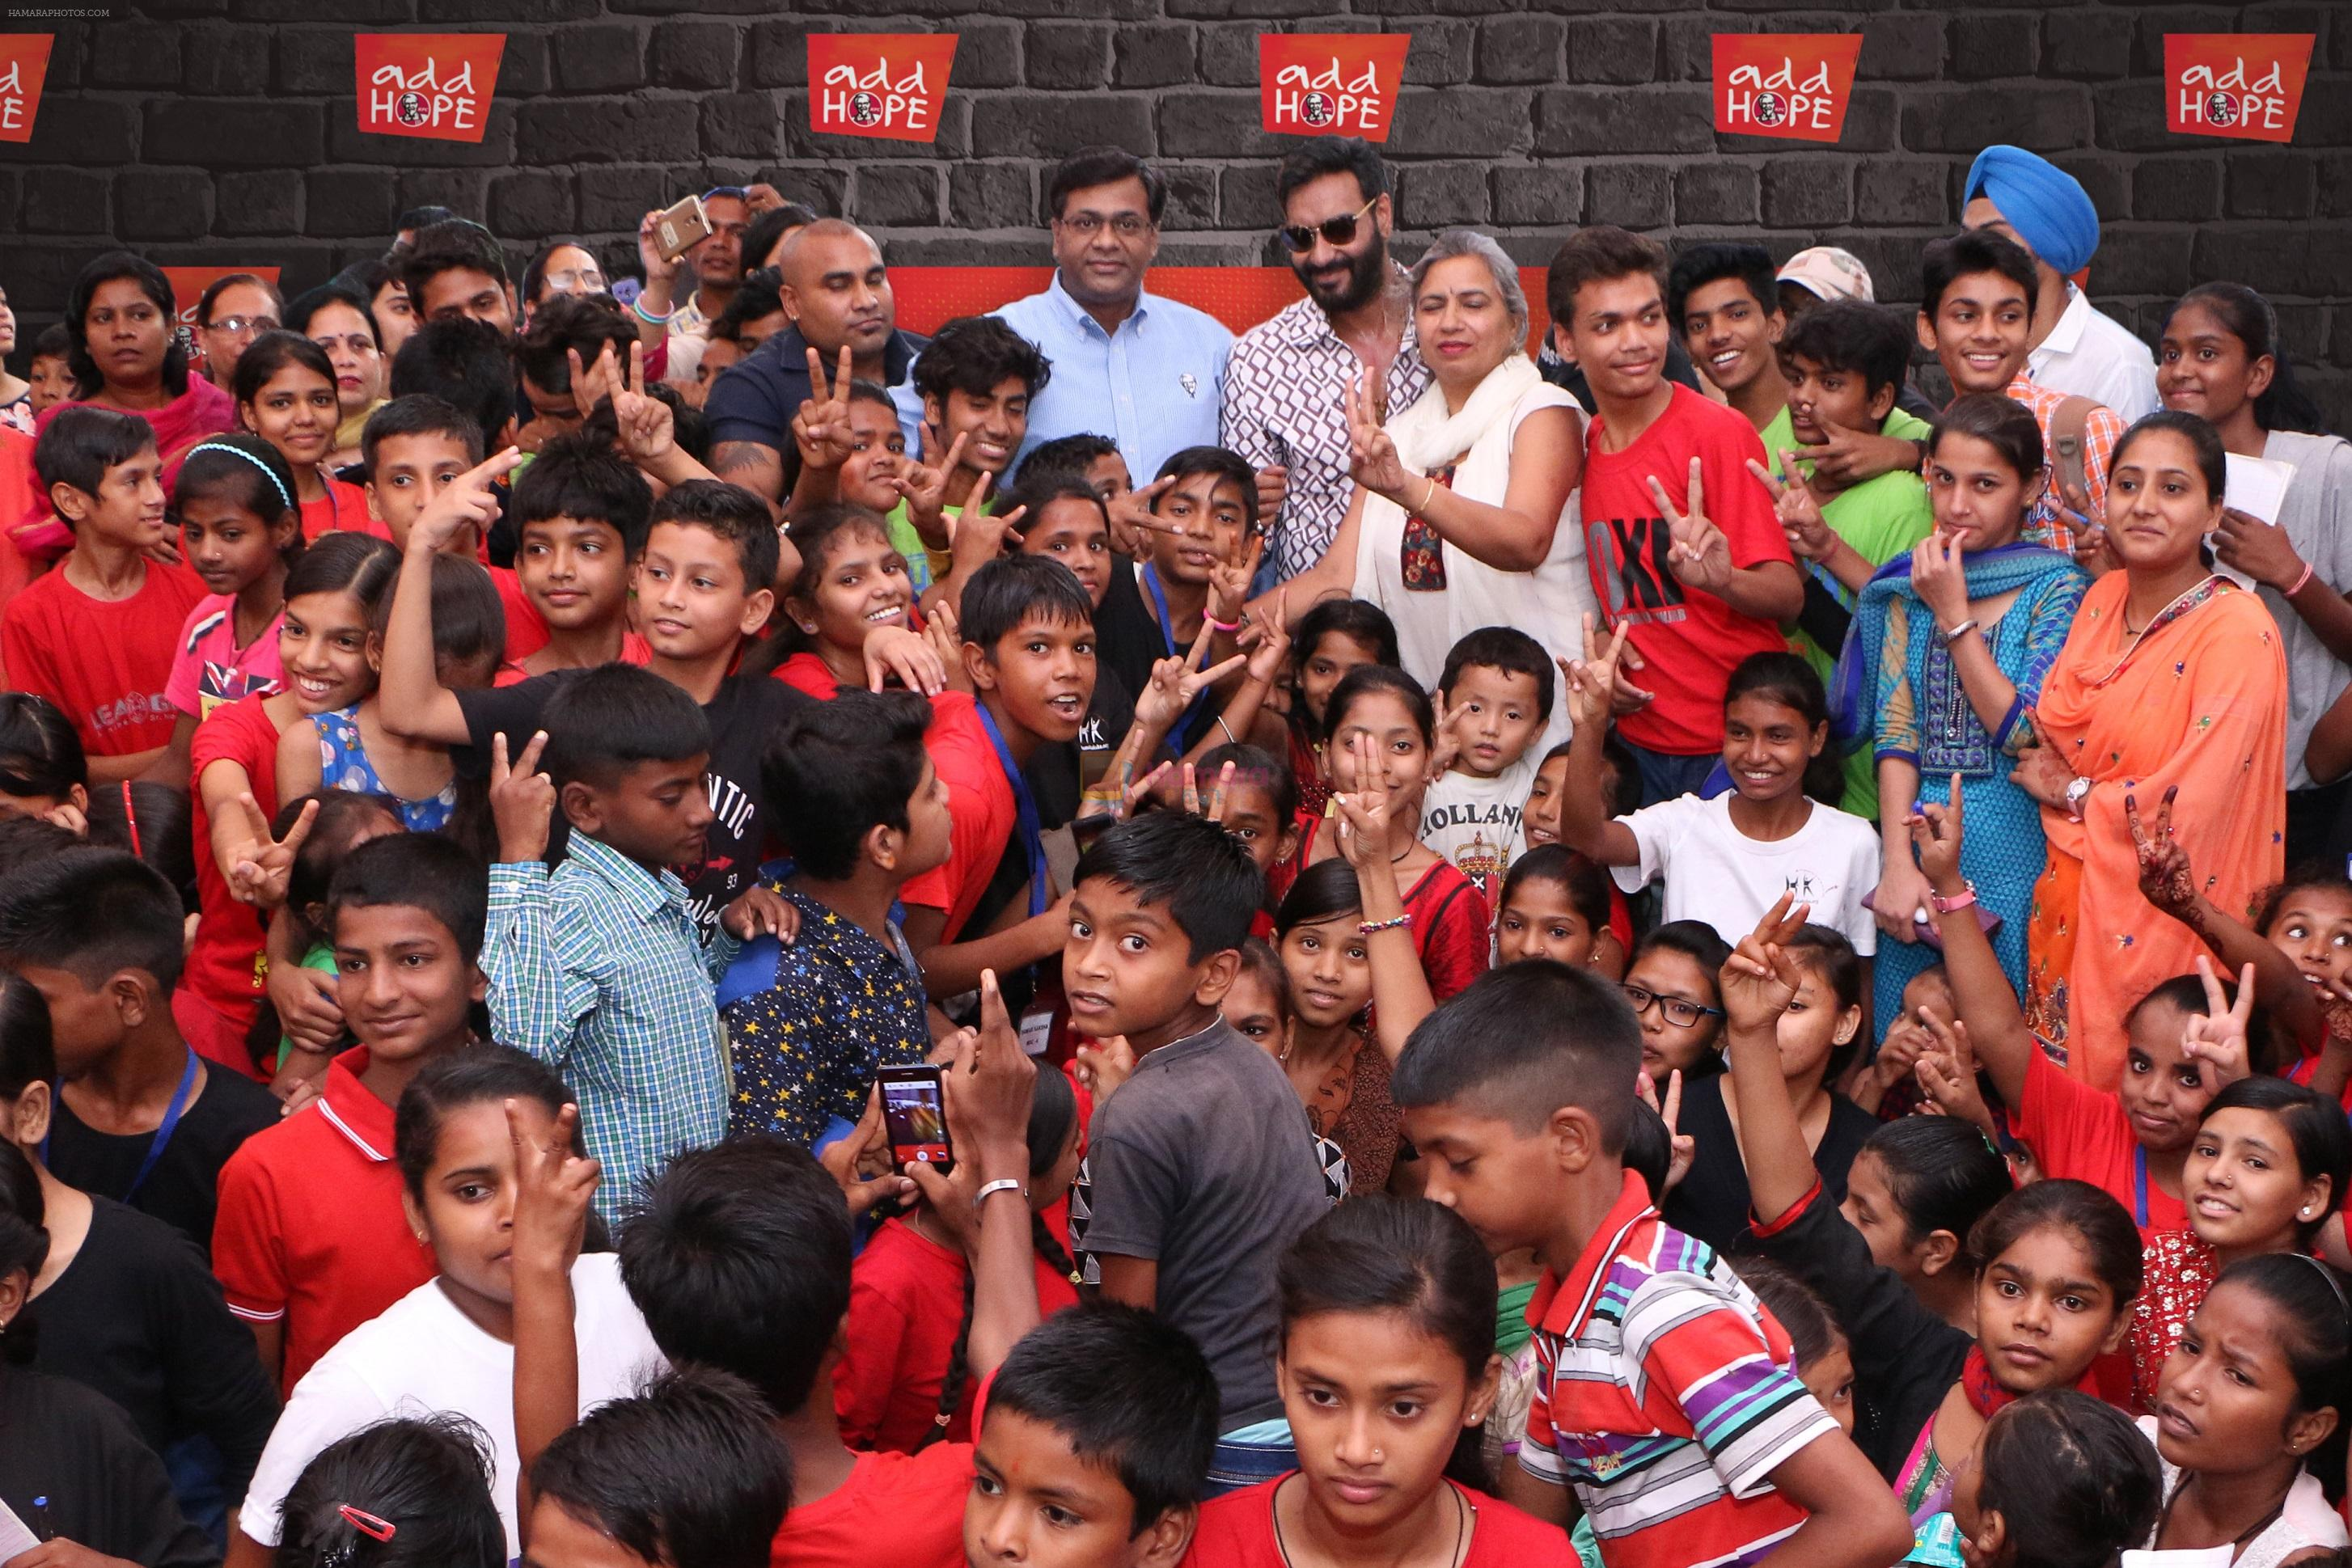 Praveen Reddy, Director, Restaurant Excellence and Area Countries, KFC India and Hope ambassador Ajay Devgn with kids at Hamaari Kaksha during add HOPE event in Chandigarh - Copy